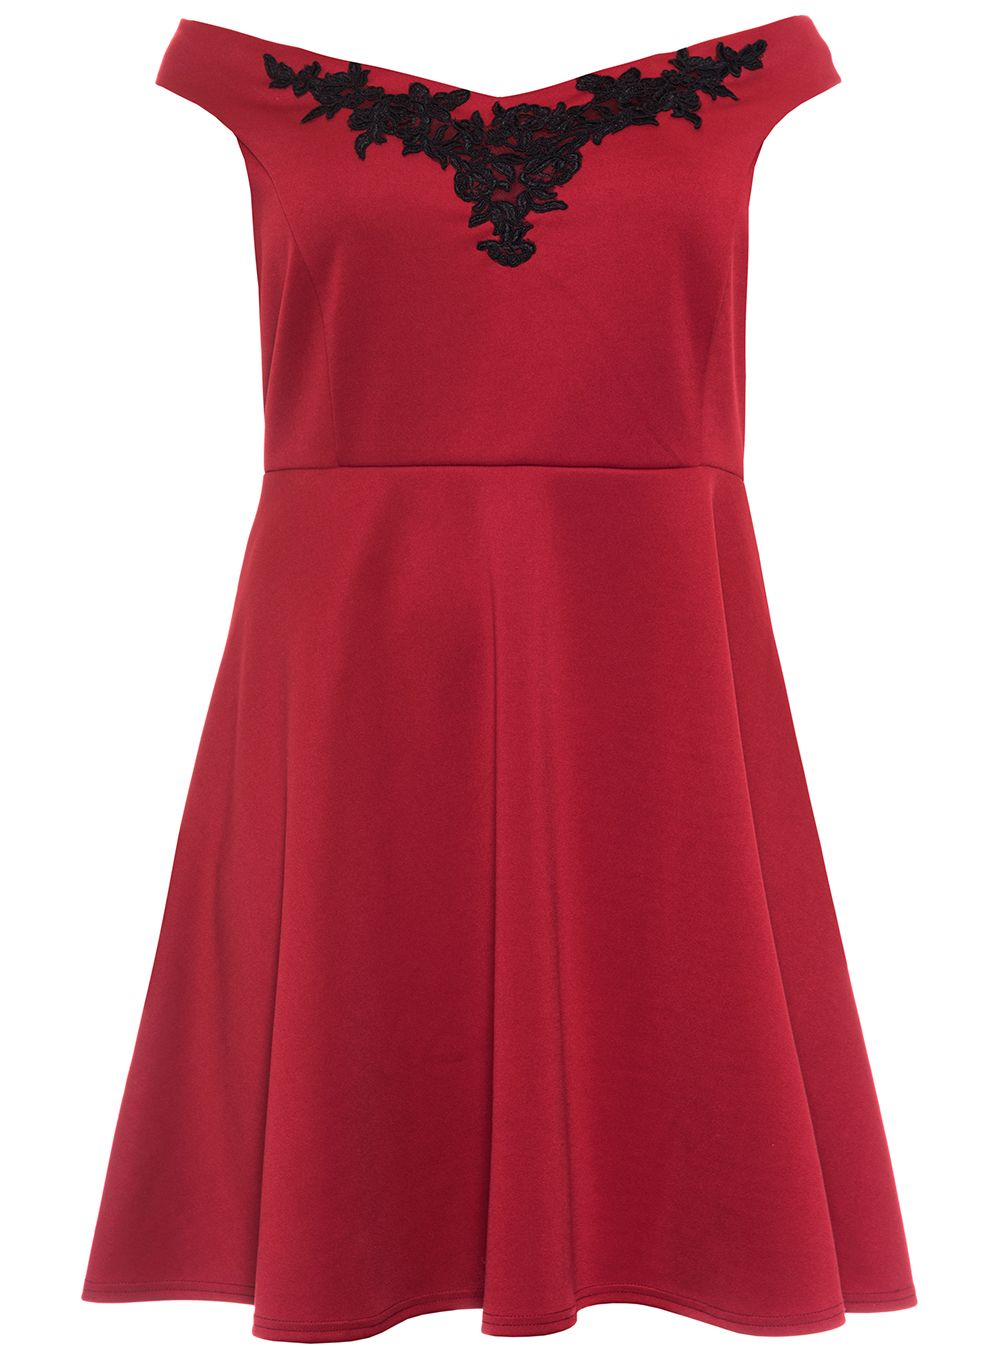 Quiz Curve Berry And Black Skater Dress, Red